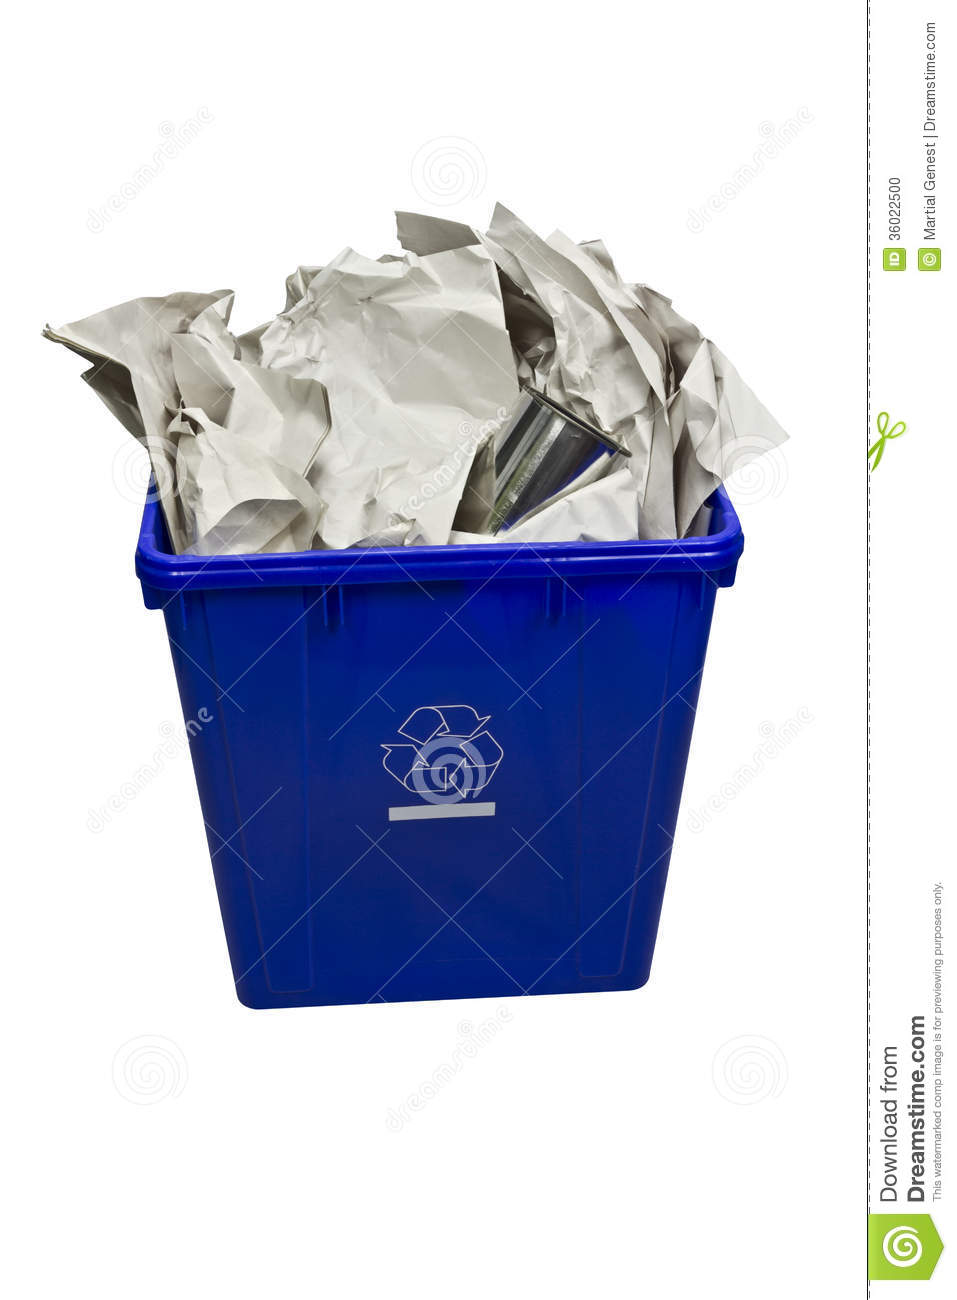 Recycling Stock Photo Image 36022500